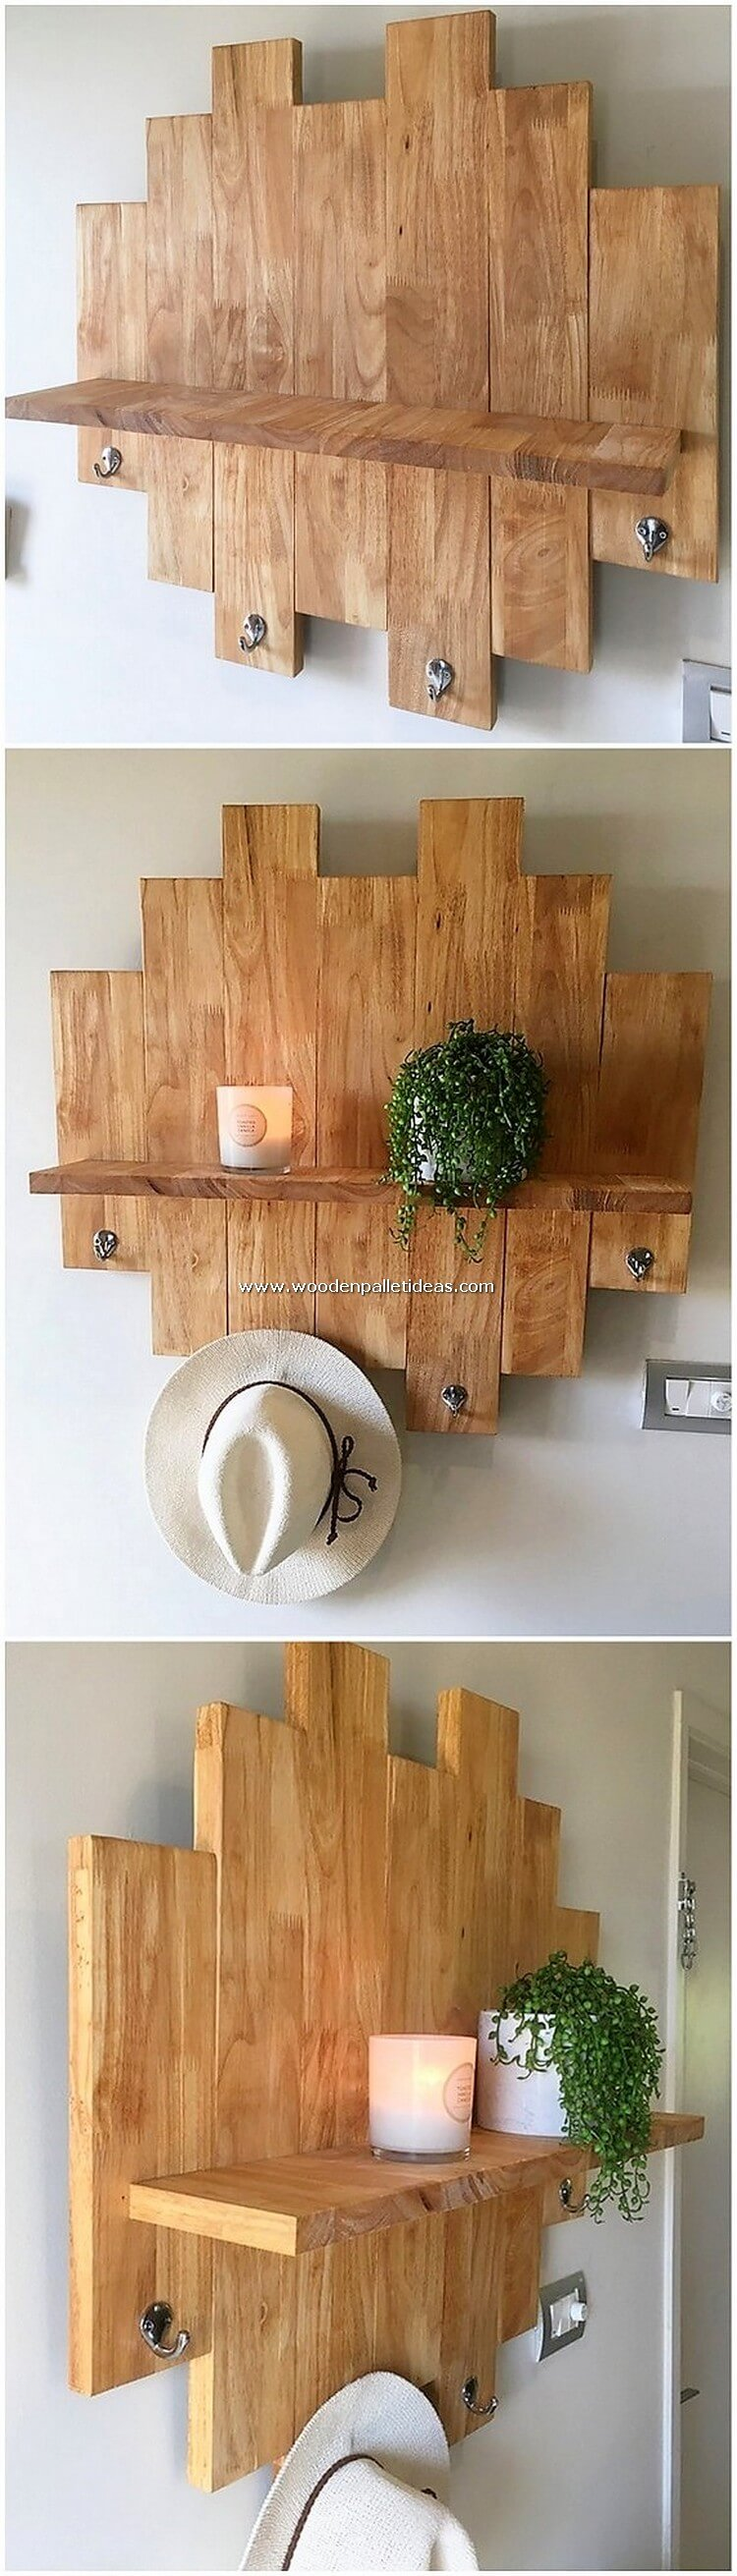 Wood-Pallet-Wall-Shelf